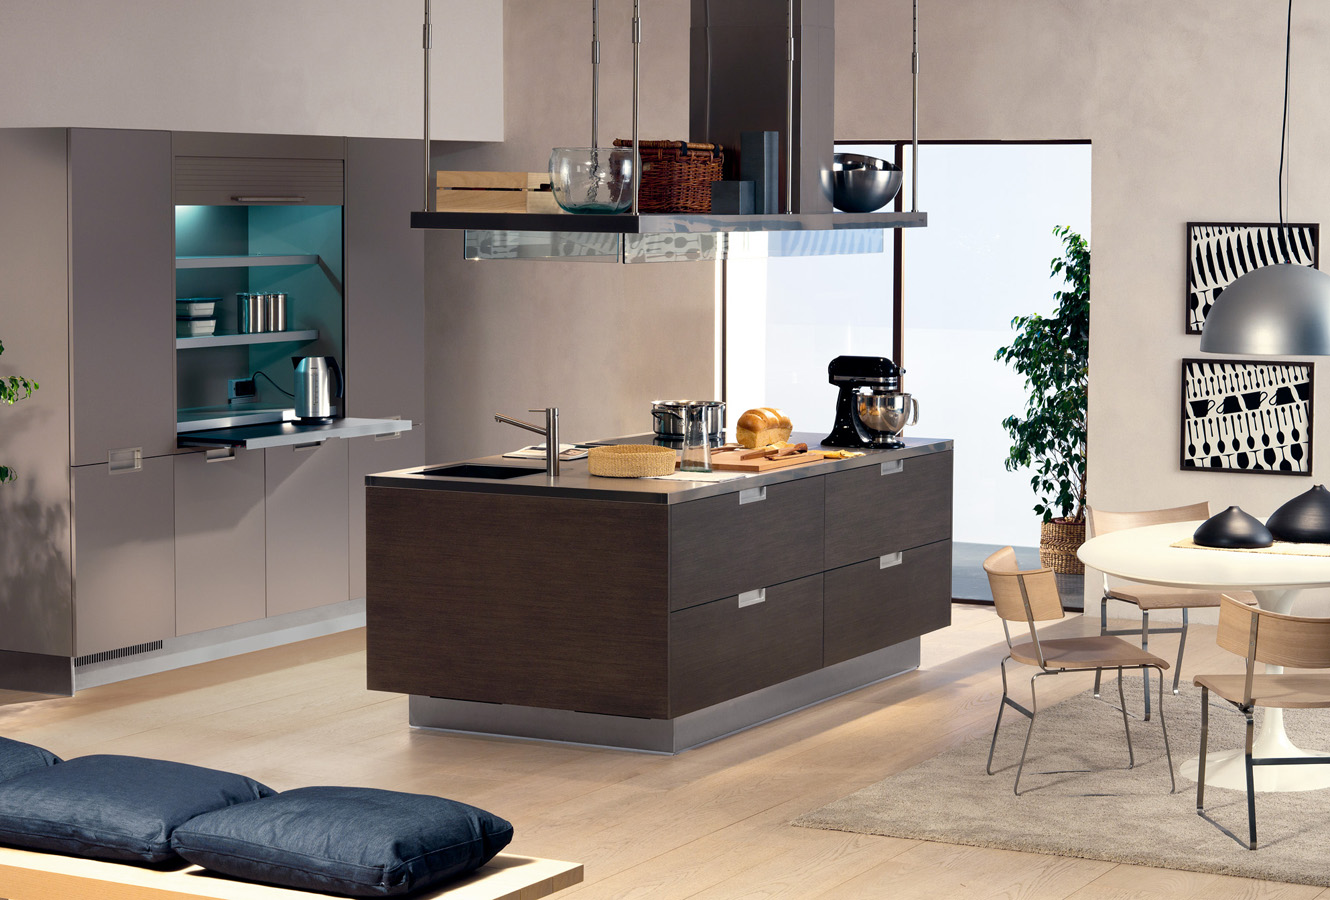 Italian Kitchen Tables Modern italian kitchen design from arclinea smiuchin another well designed space with recessed walls that keep the space appearing larger and open workwithnaturefo